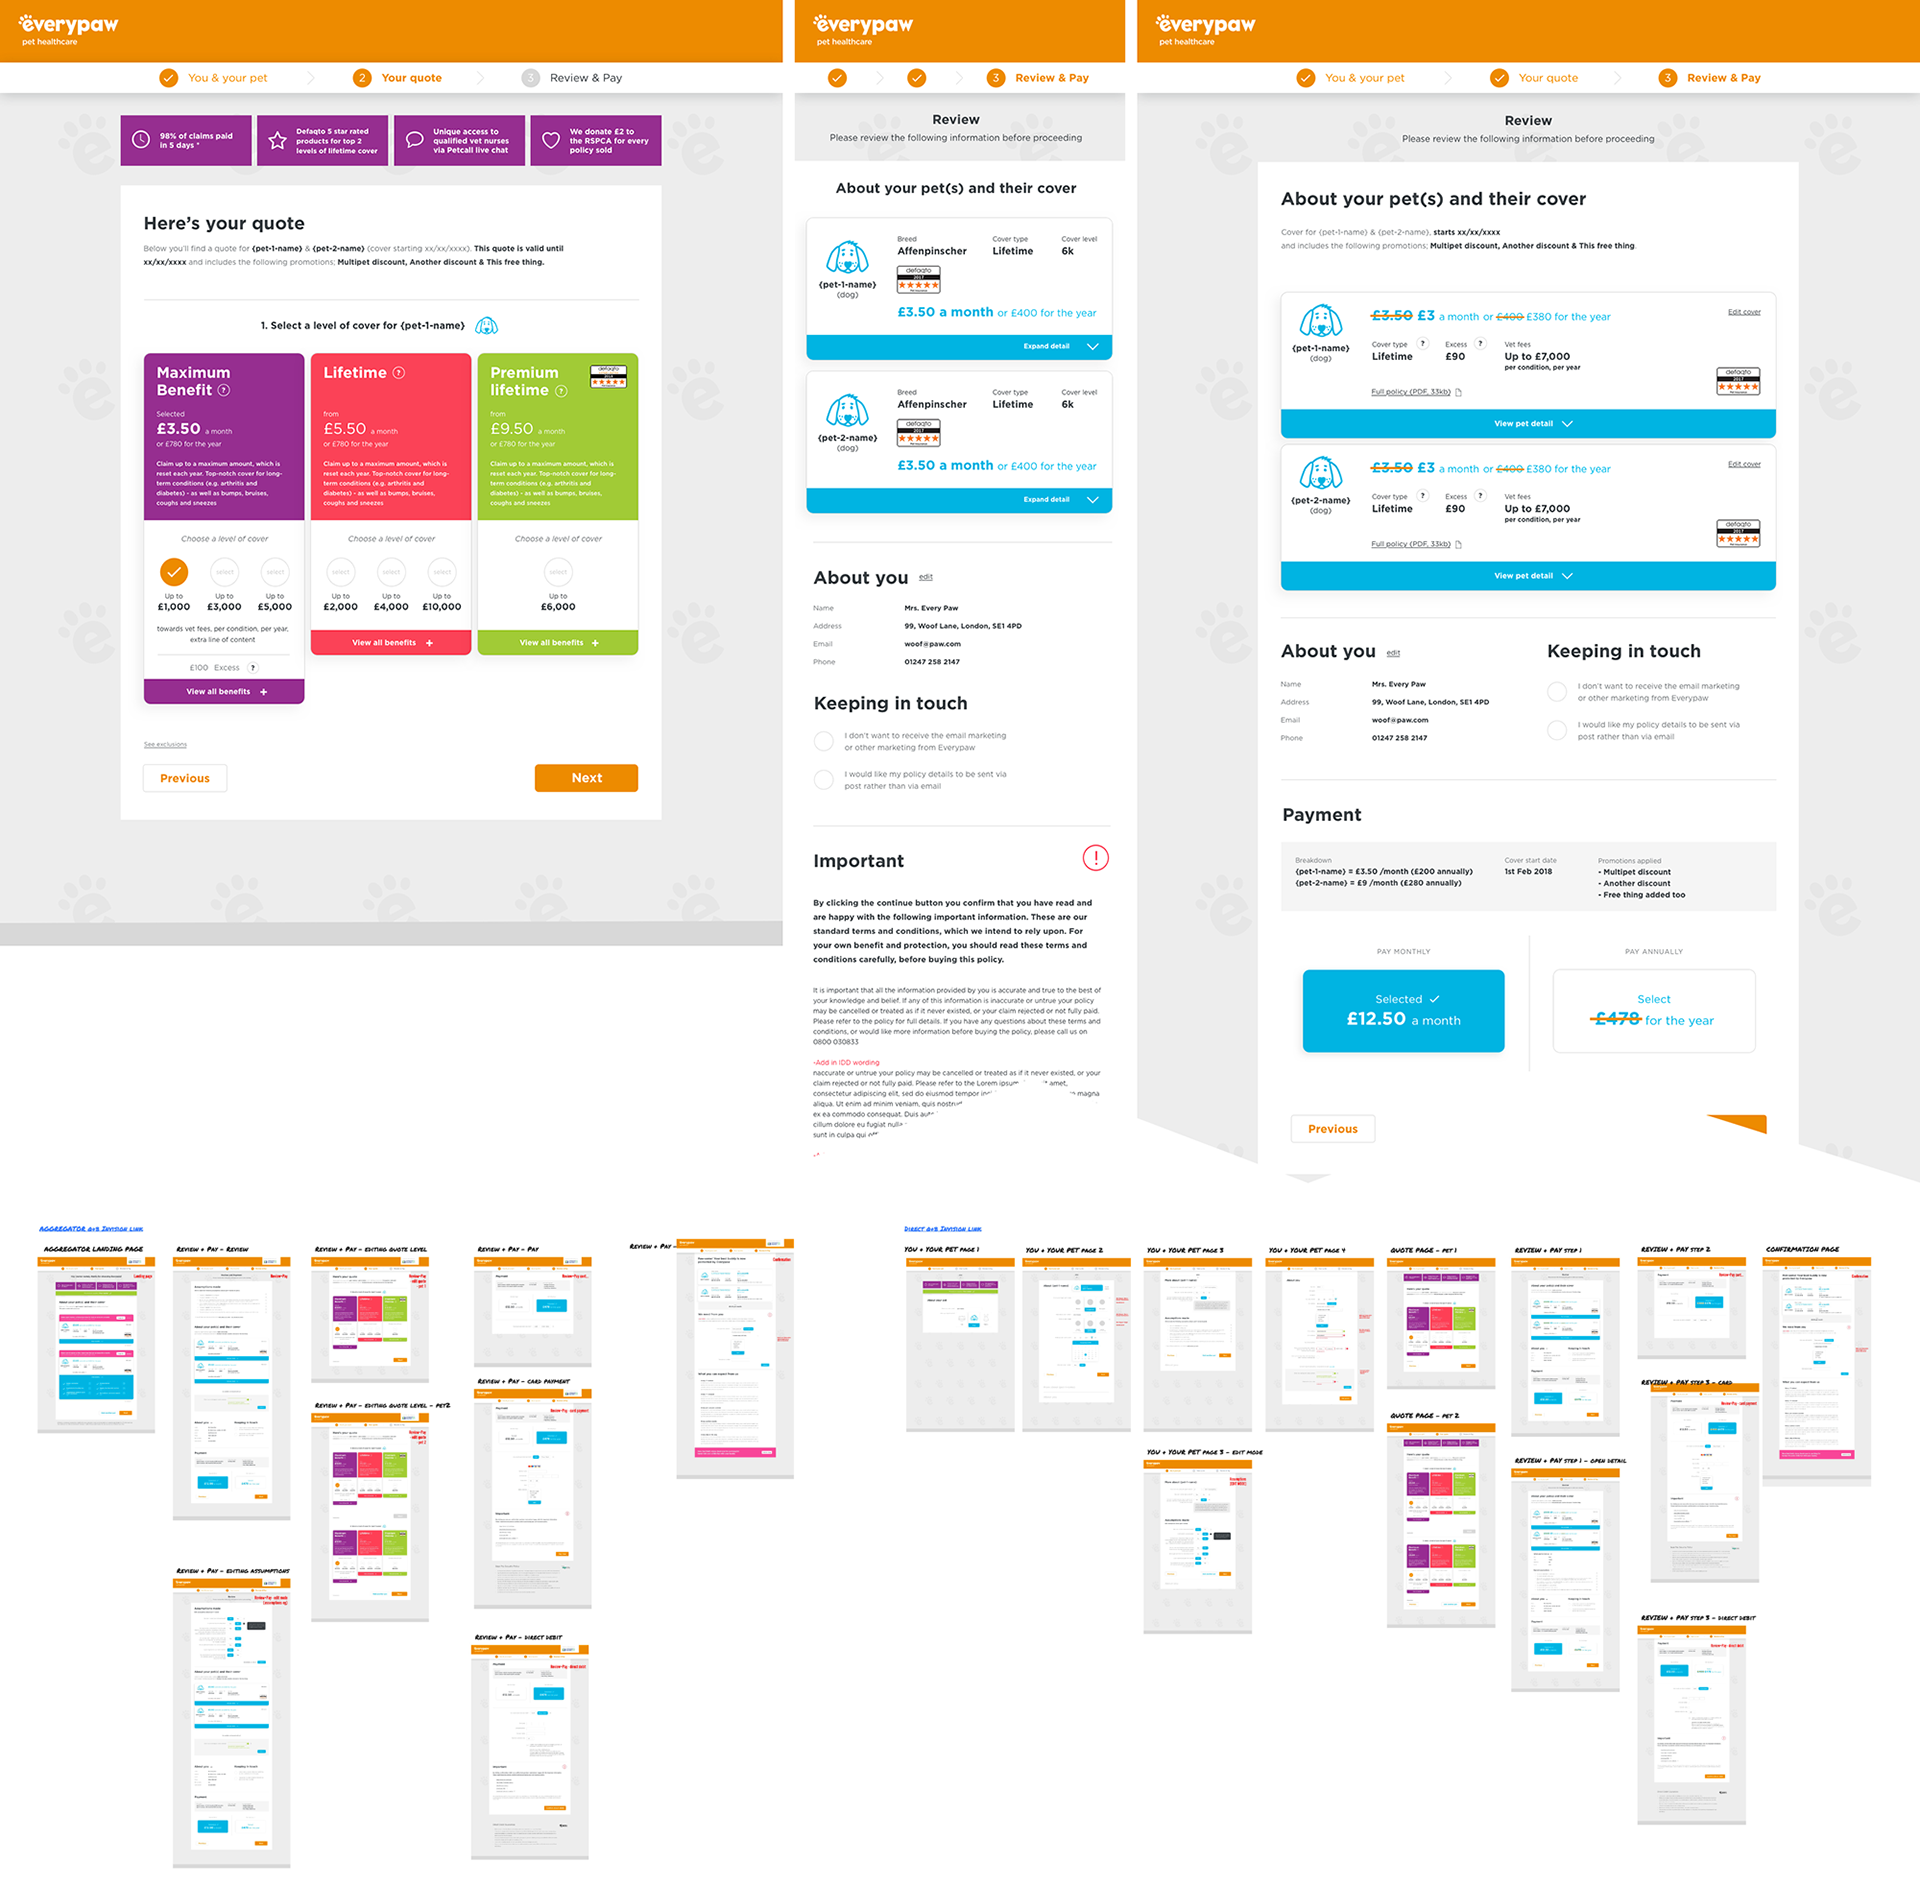 Using our pre-built library of components in Sketch, we quickly created detailed mockups of all screens, co-creating with the product owner where required, and exporting to an InVision prototype to provide an interactive version which cleared up any misunderstandings. We designed a range of usability improvements, and overhauled the purchase journey, offering easier comparison of insurance products and the ability to buy for several pets at once.